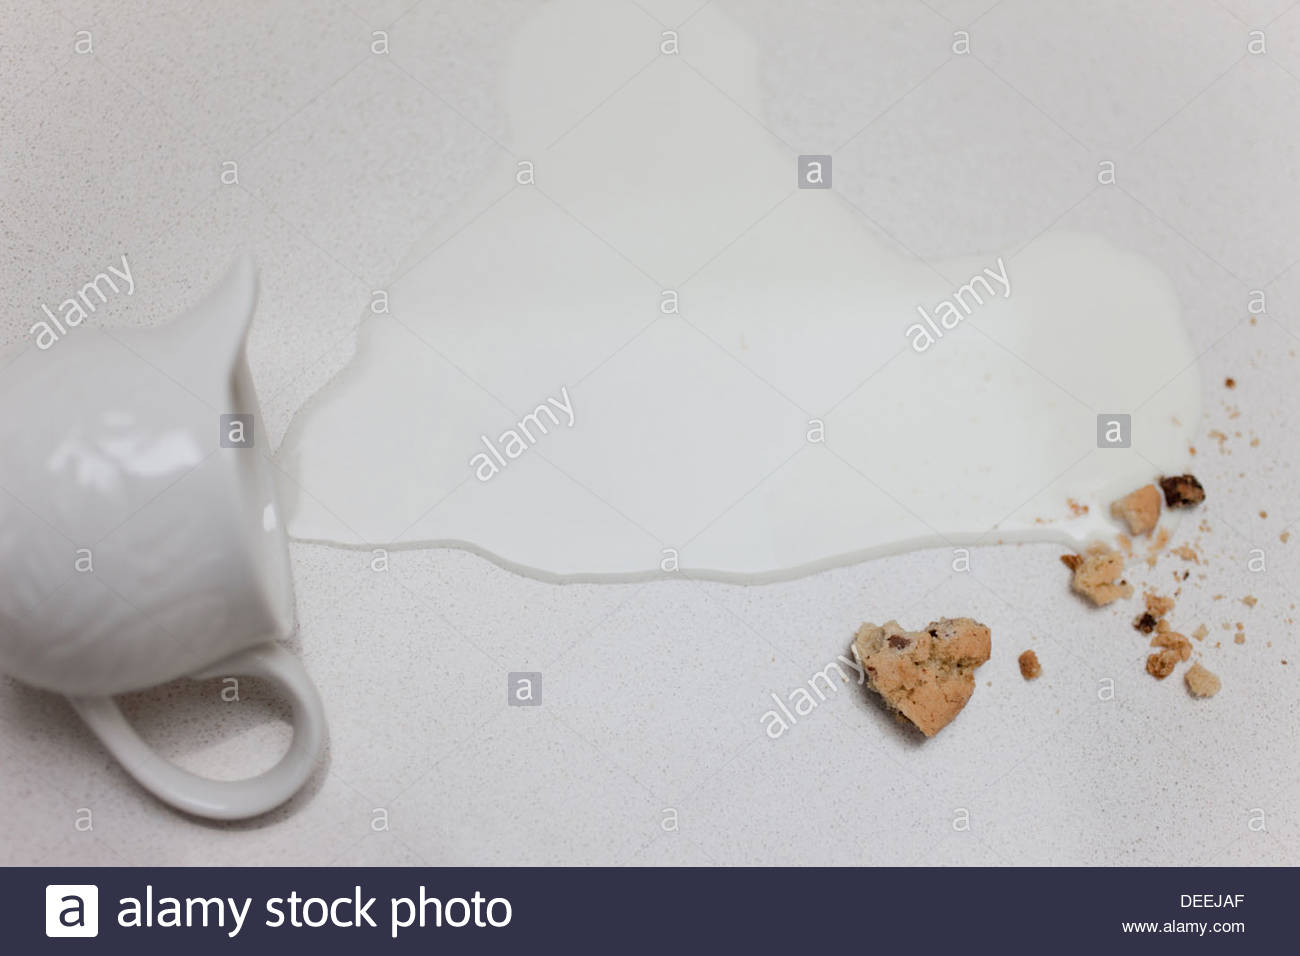 Spilled milk from pitcher and cookie crumbs - Stock Image